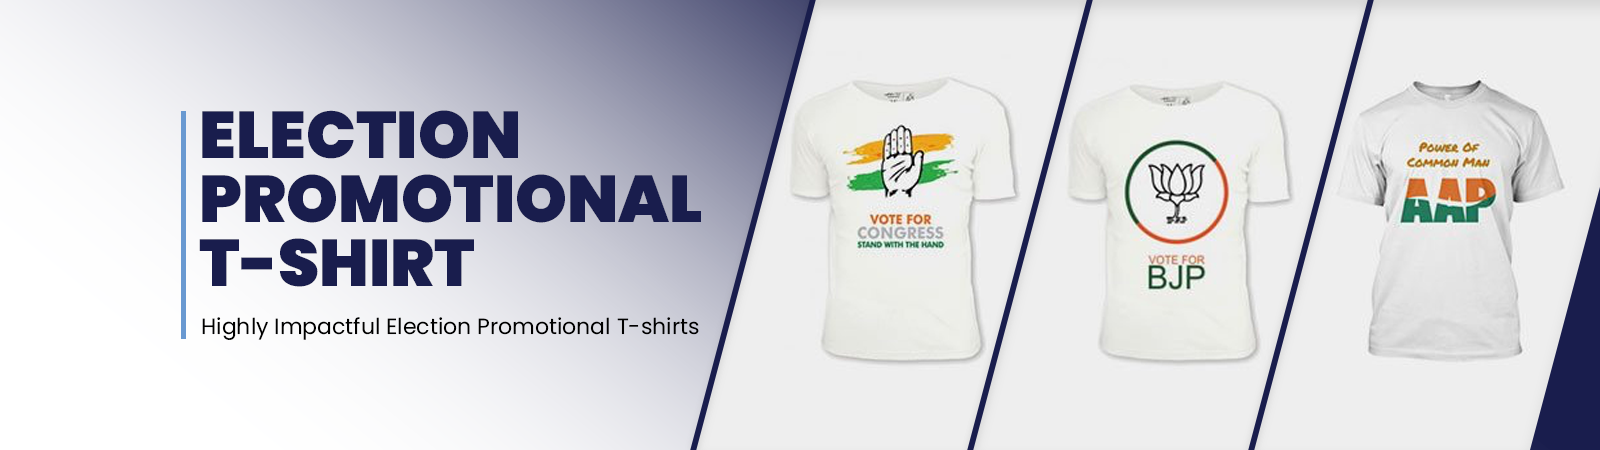 BSP Election T-Shirt